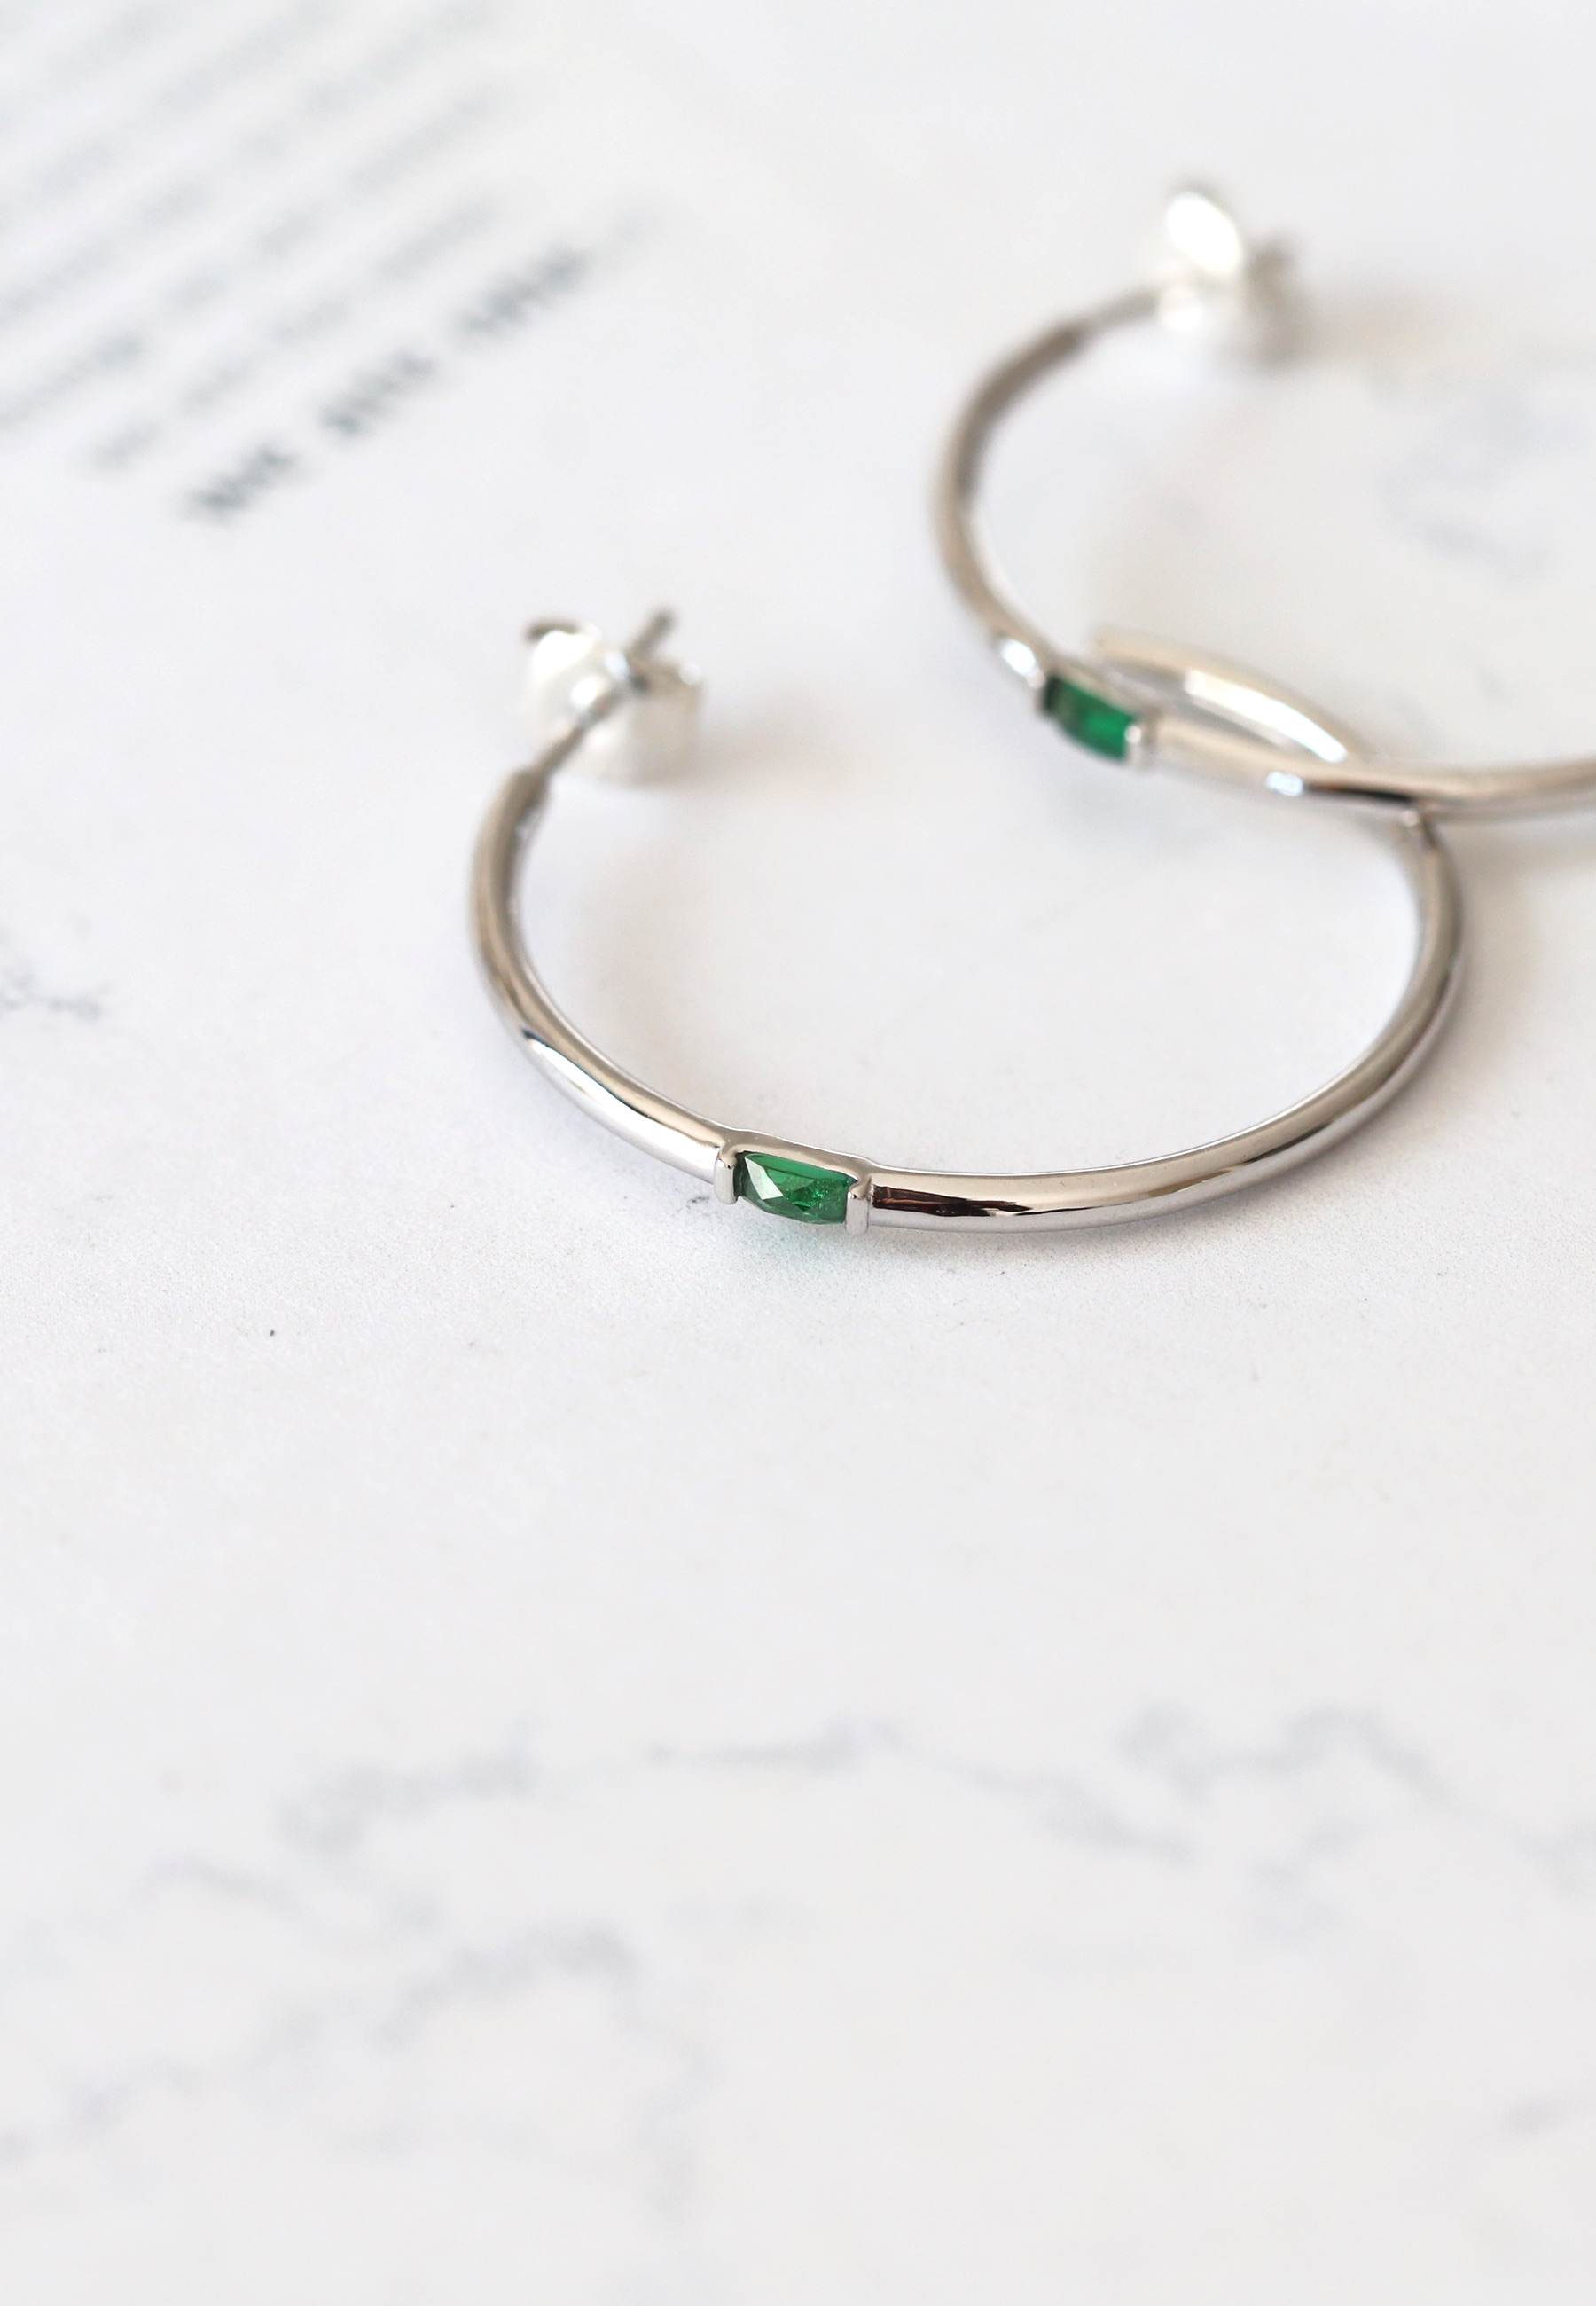 ESMERALDA Silver hoops earrings